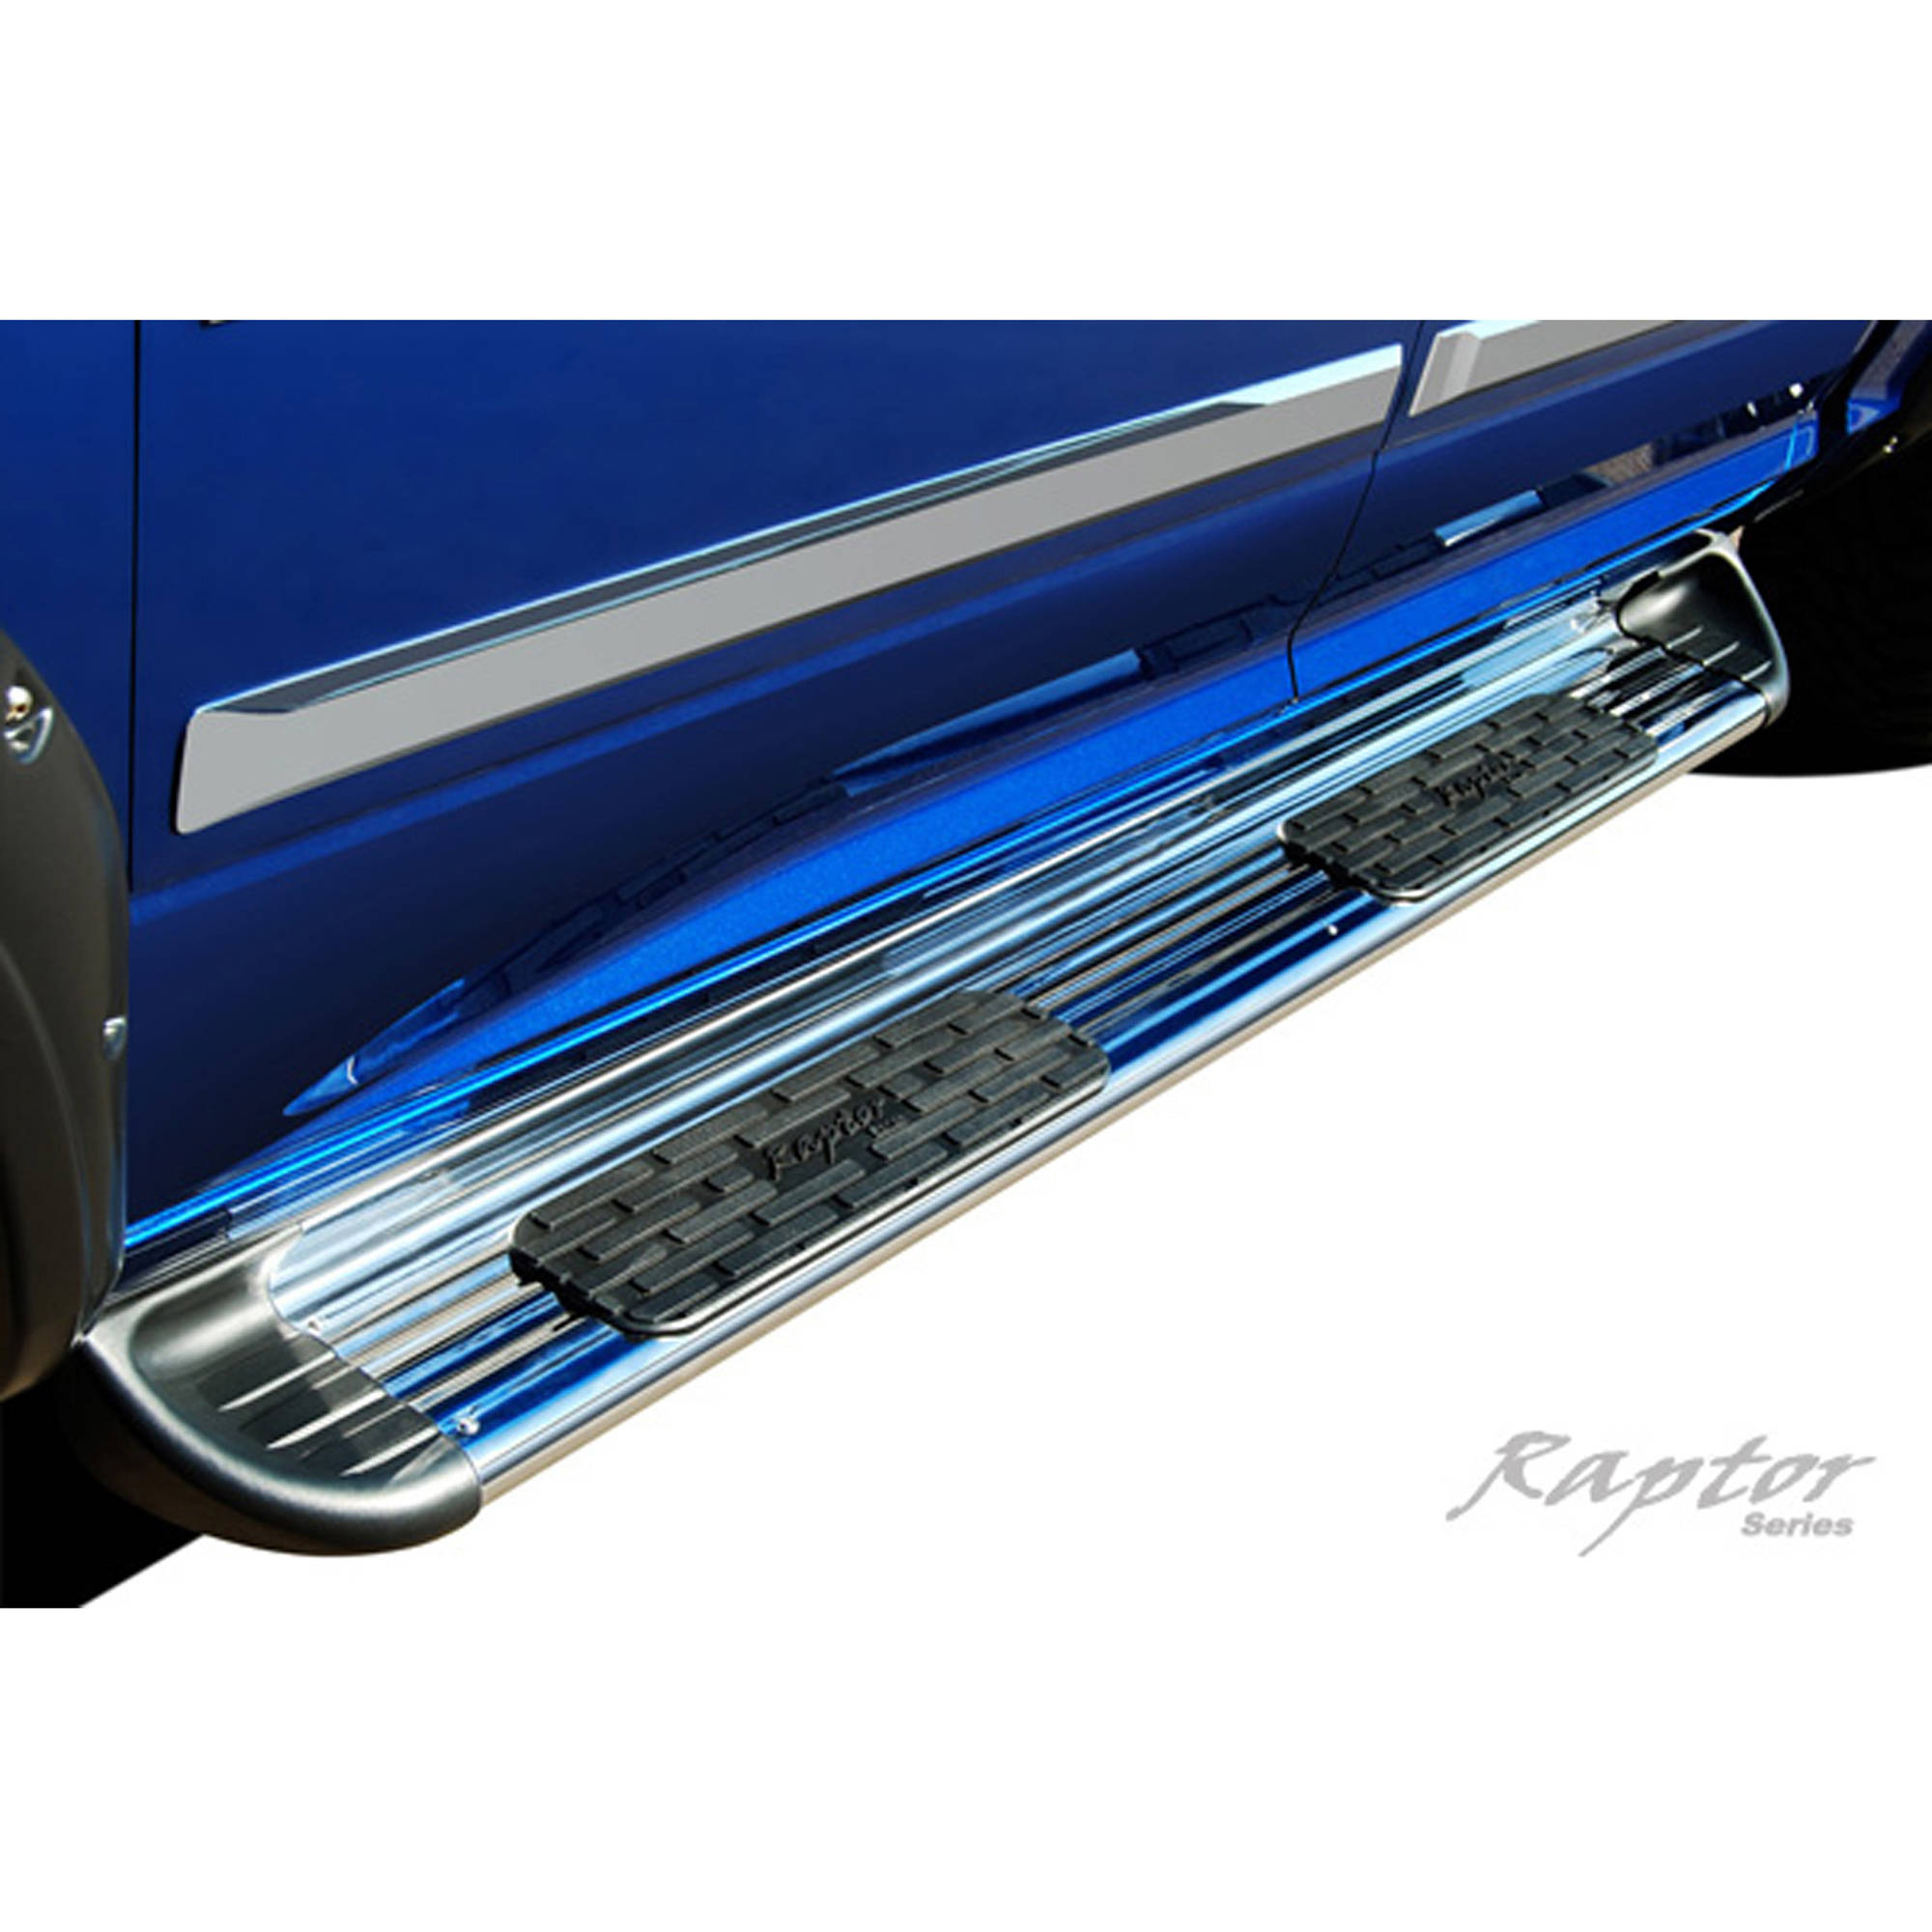 "Raptor Series 02-08 Dodge Ram 1500 Quad Cab; 03-09 Dodge Ram 2500/3500 Quad Cab 7"" Running Board, Stainless Steel"